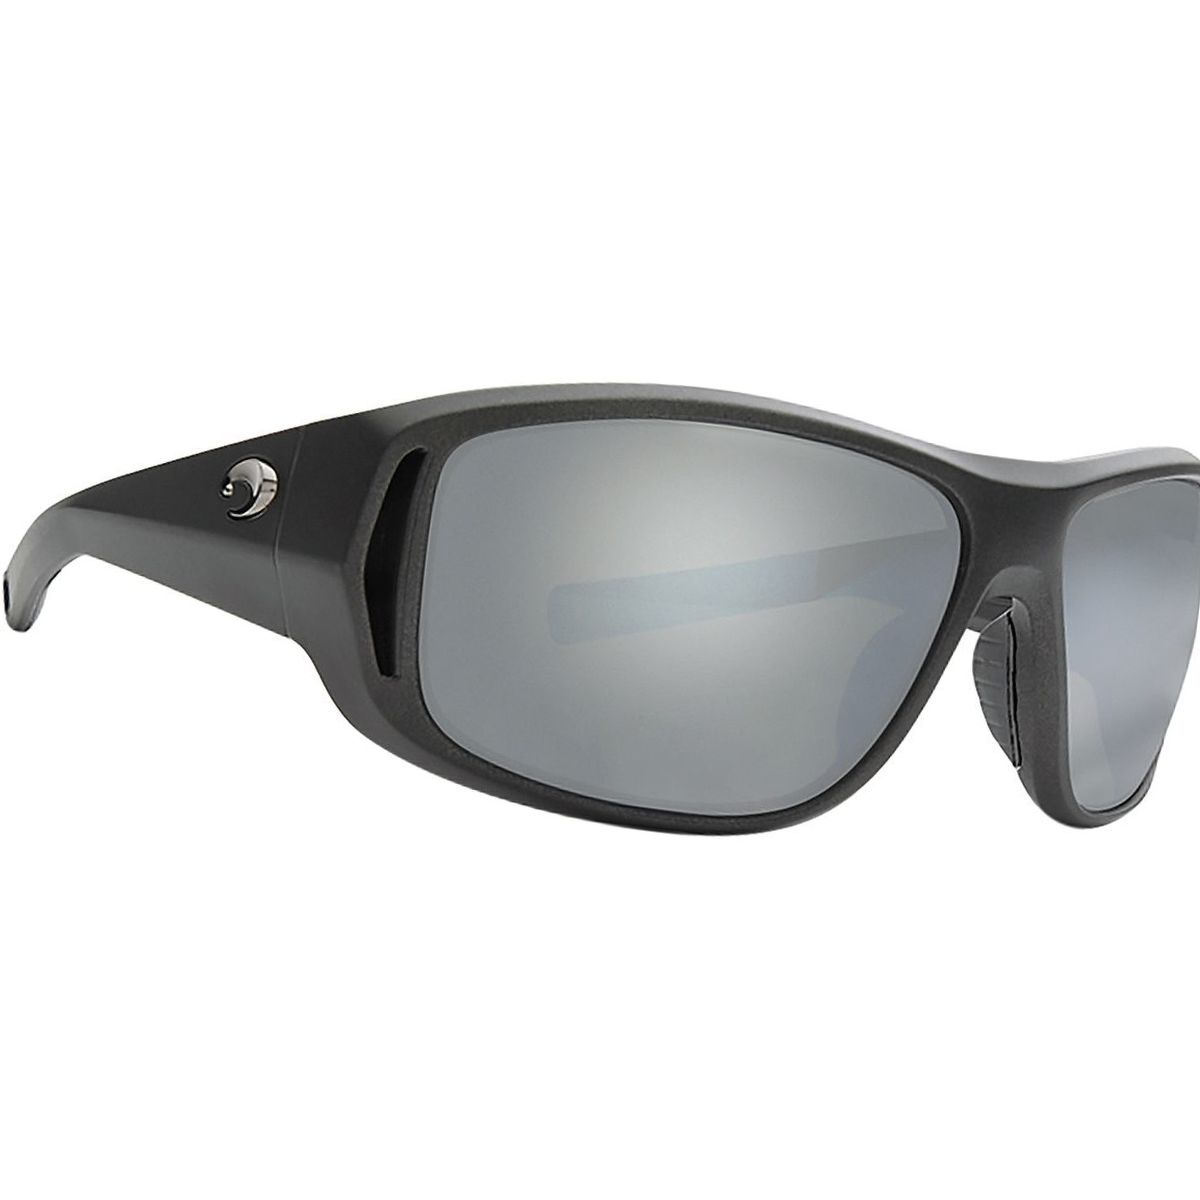 Costa Montauk 580G Polarized Sunglasses - Men's